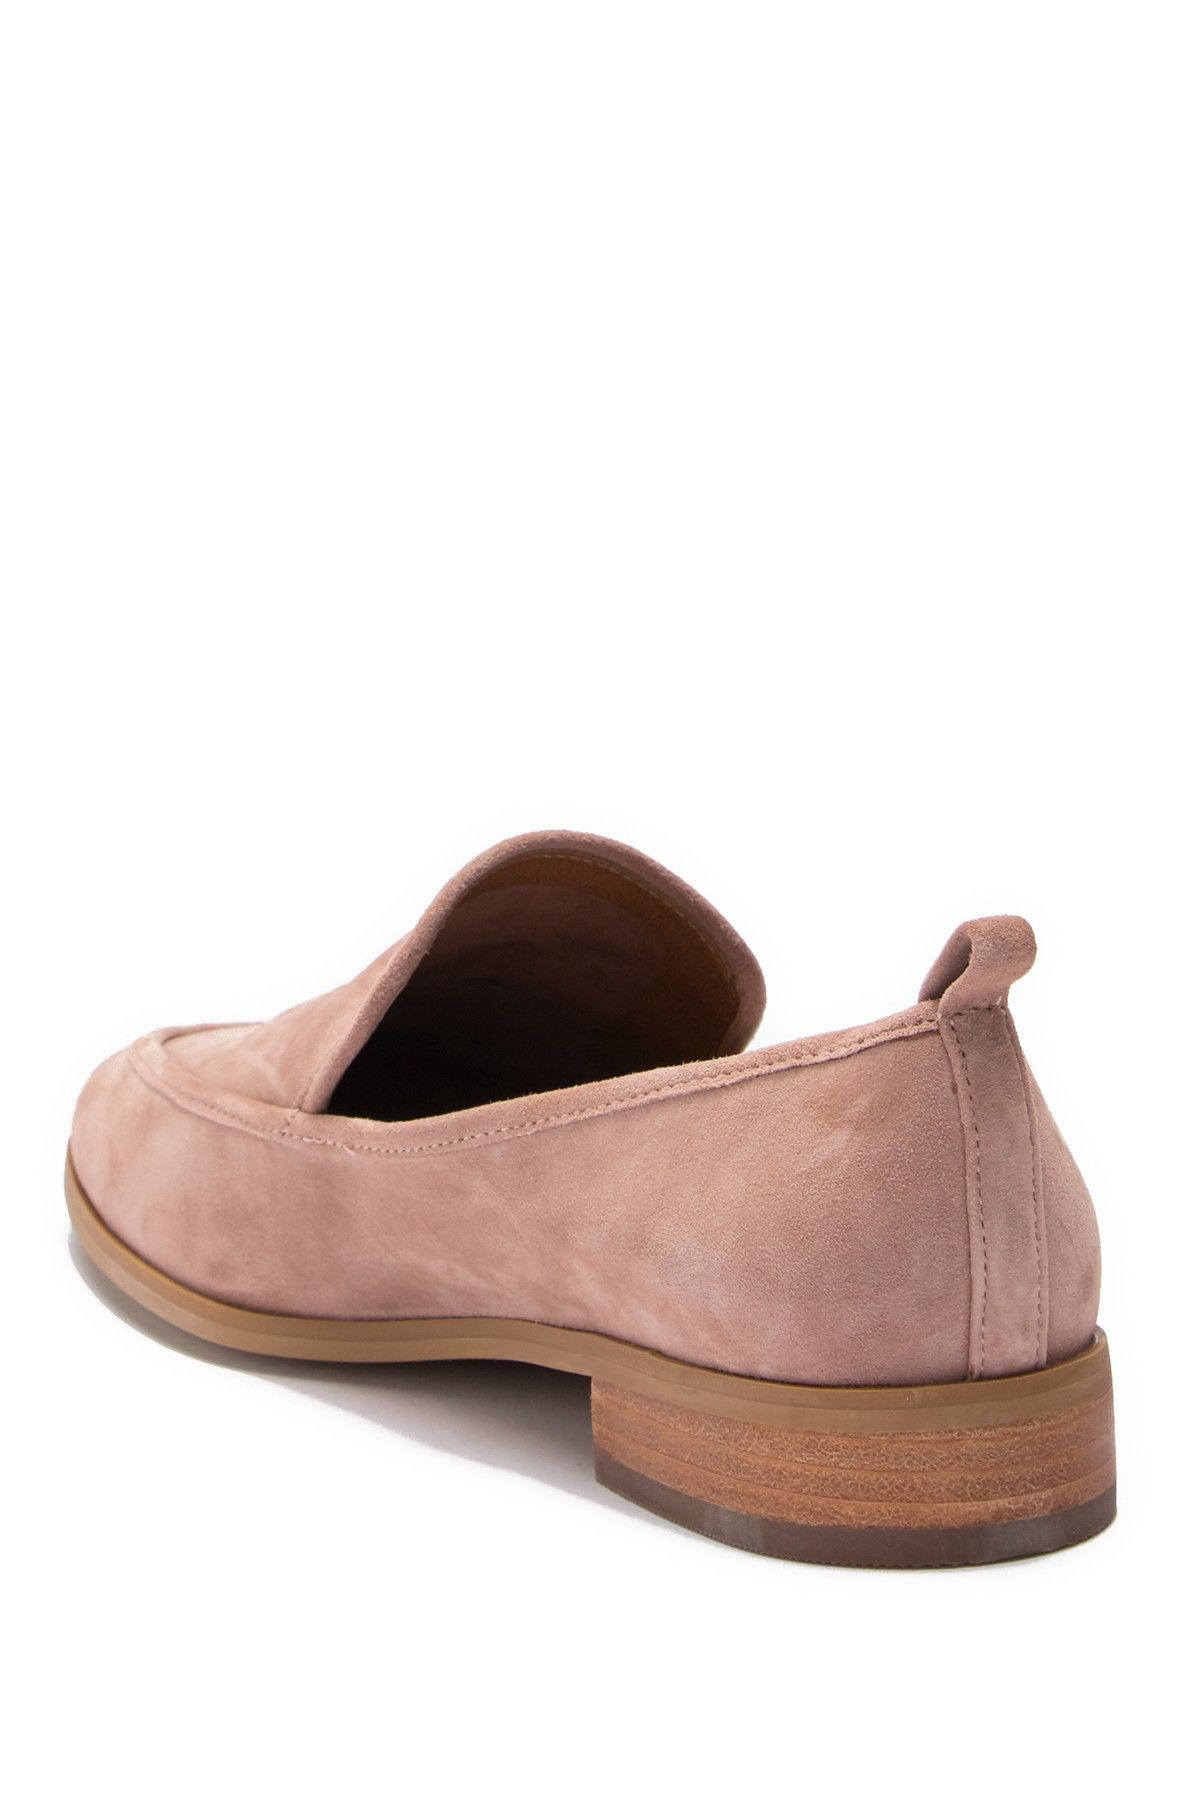 893b1eed337 SUSINA - Kellen Almond Toe Loafer - Wide Width Available. Free Shipping on  orders over